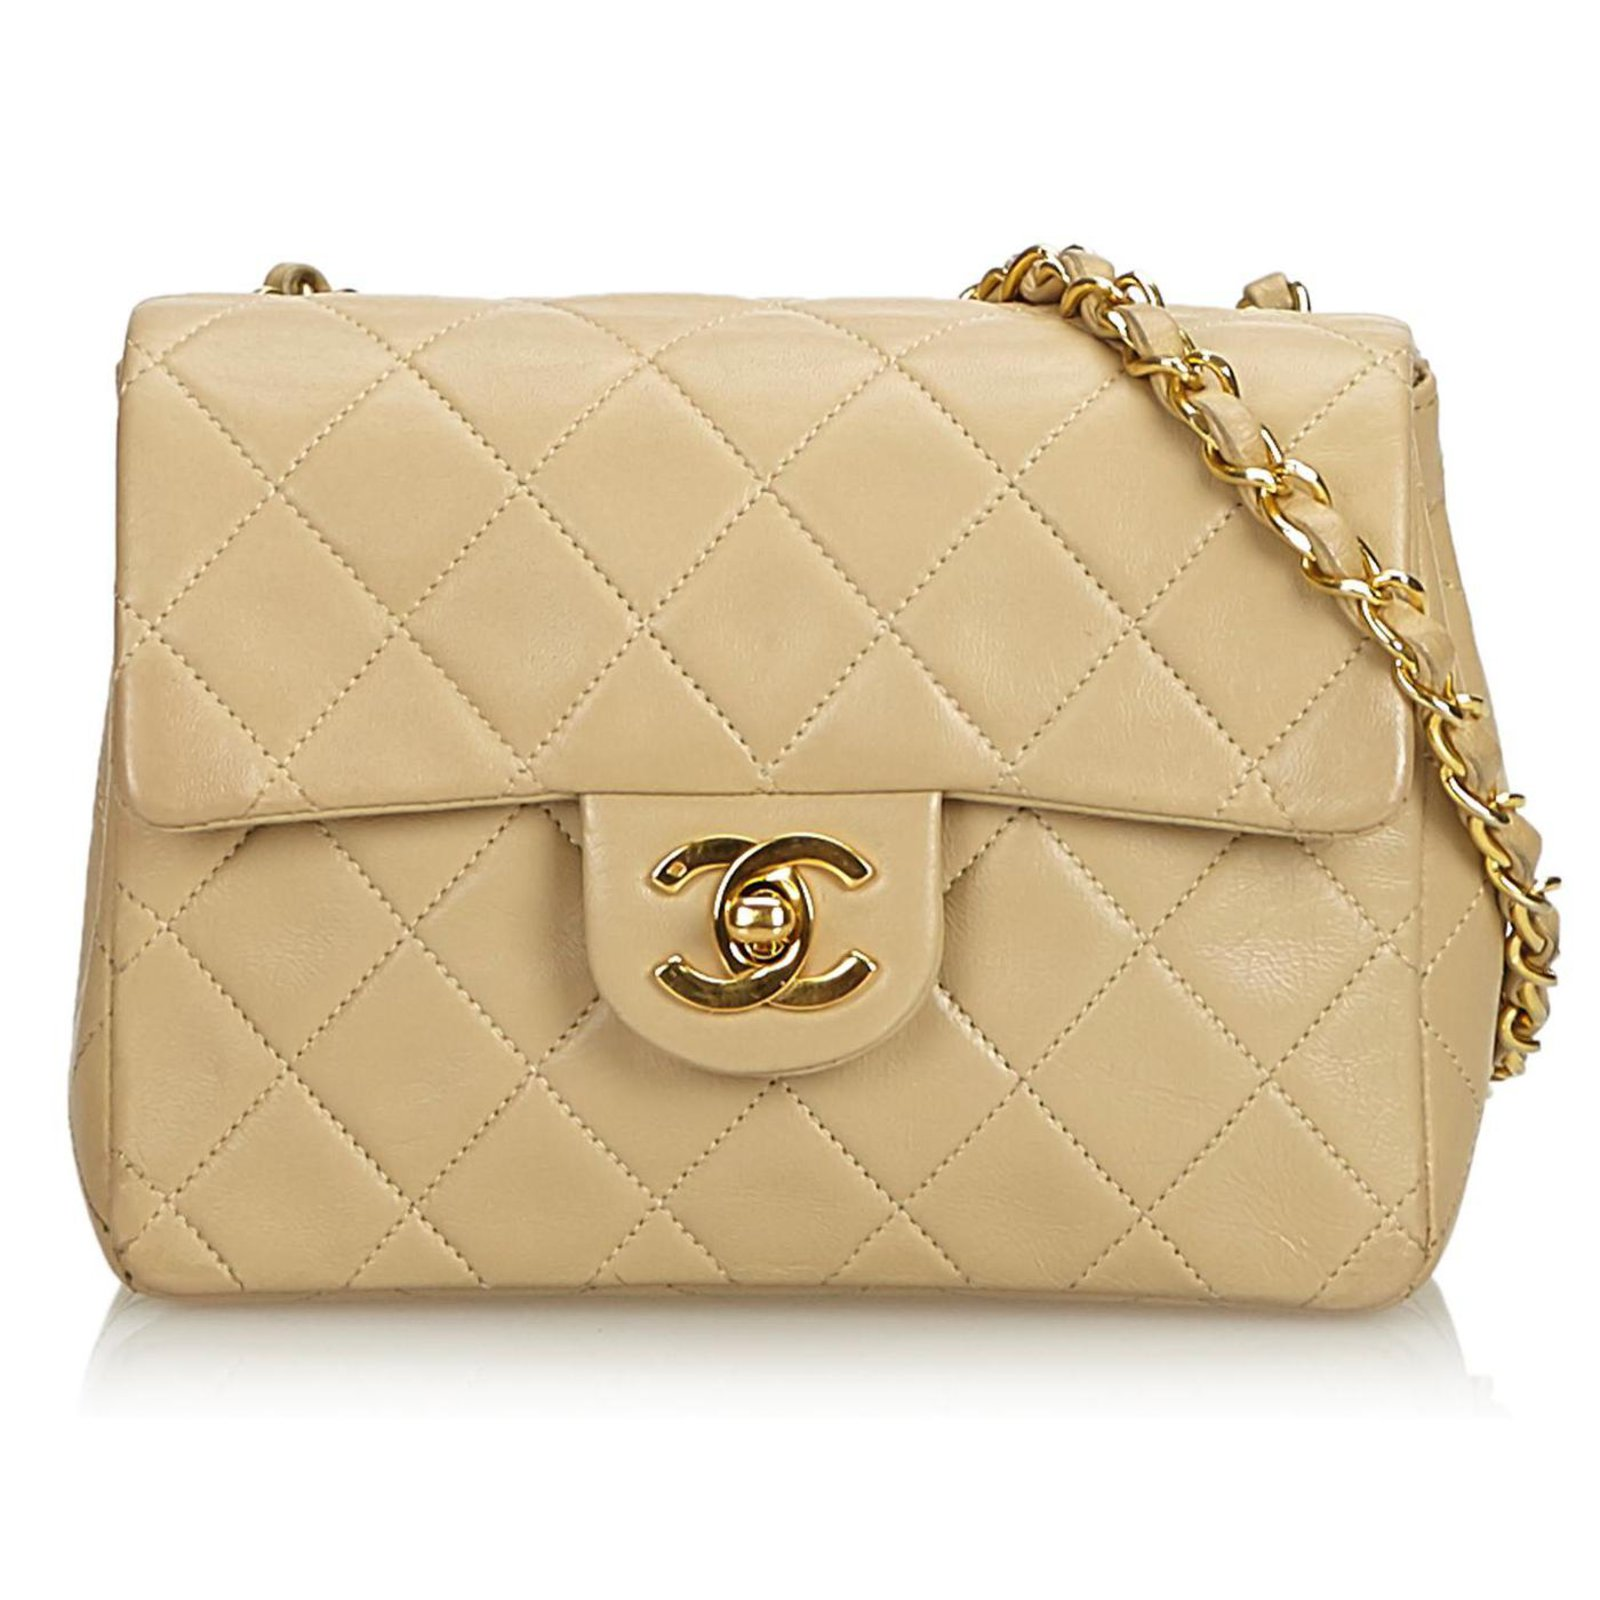 1020b7941e83 Chanel Chanel Brown Classic Mini Square Lambskin Leather Single Flap Bag  Handbags Leather Brown,Beige